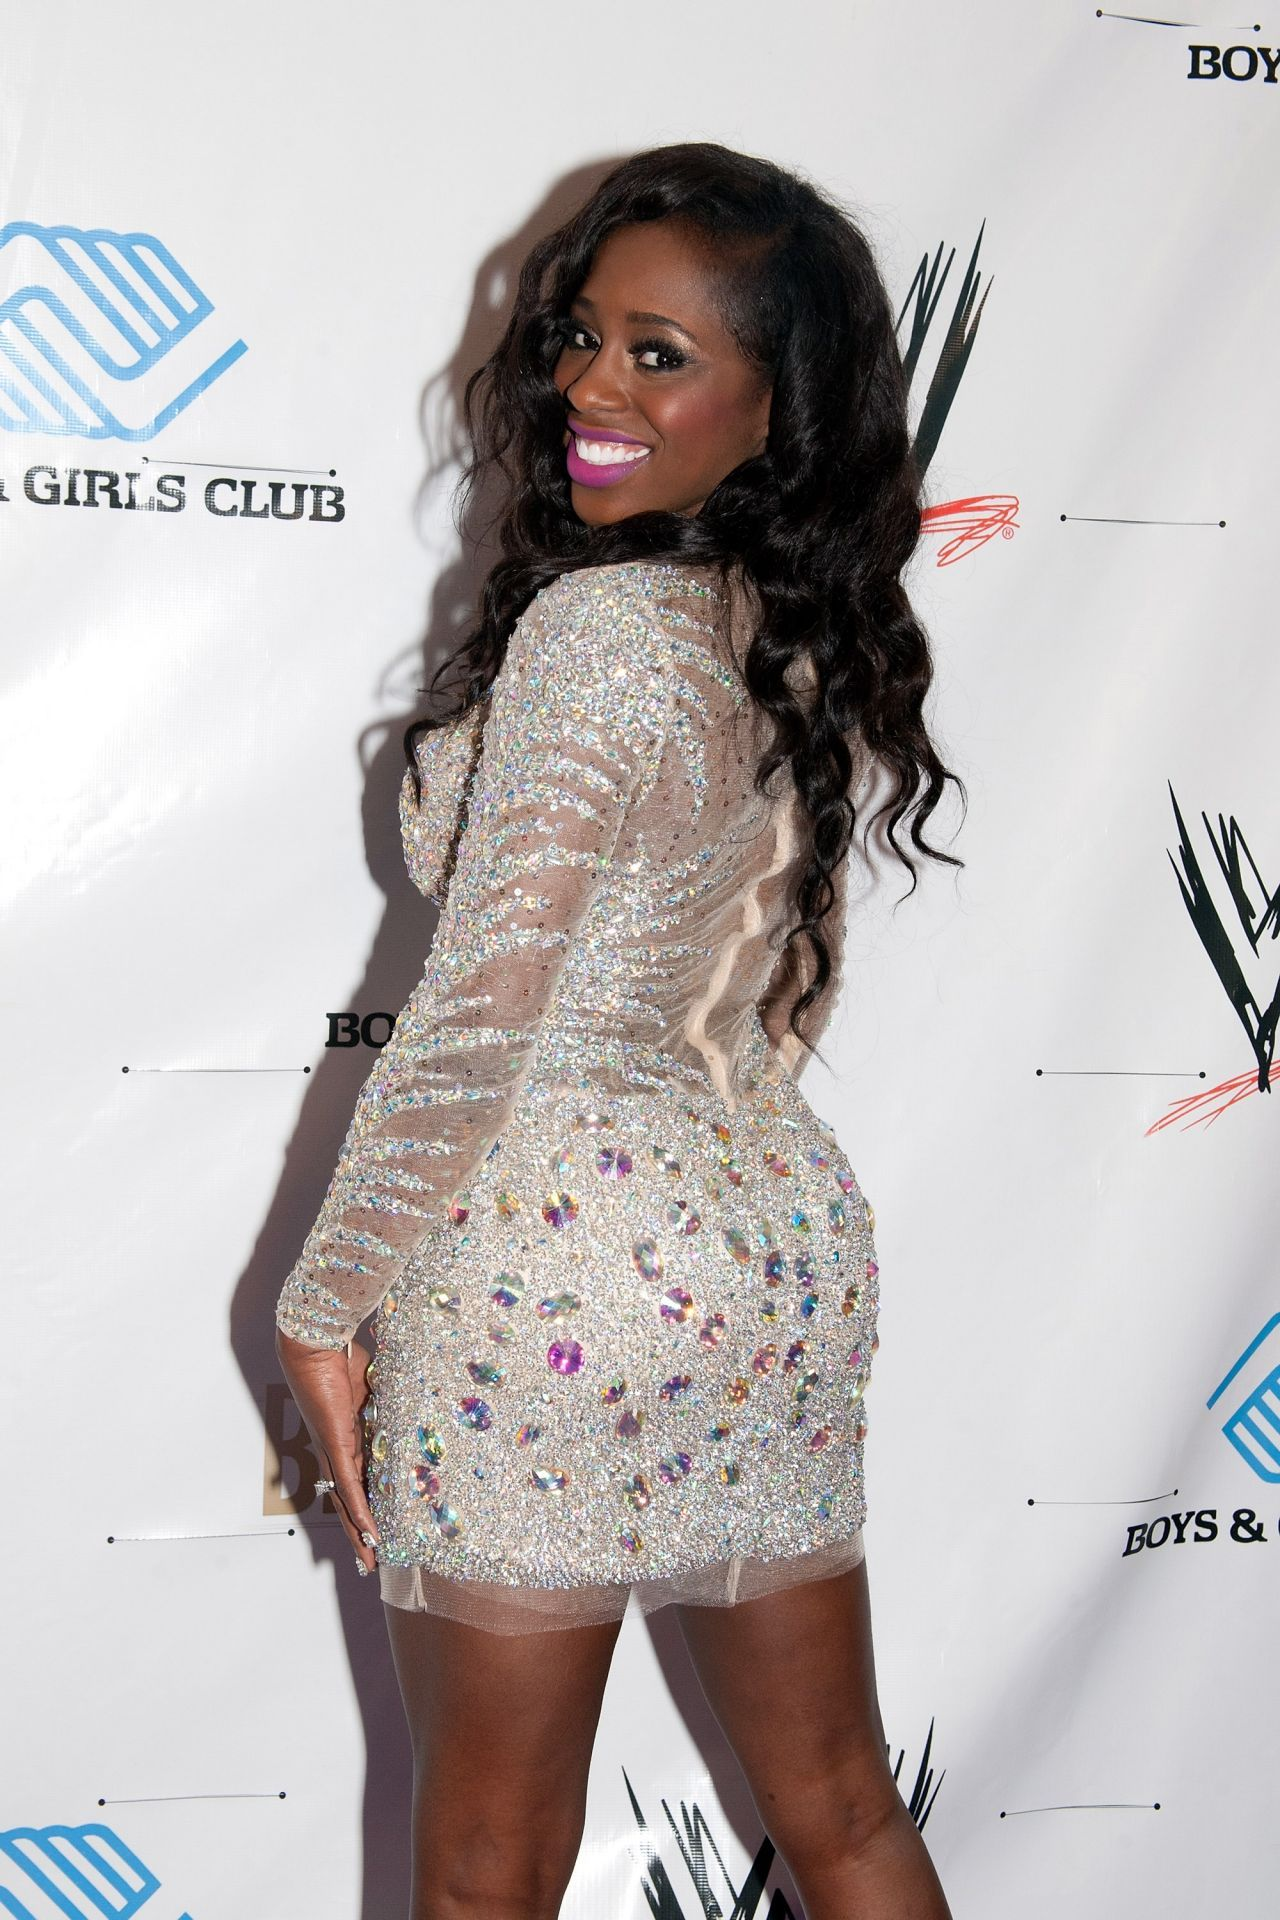 Naomi Hot in Short Dress